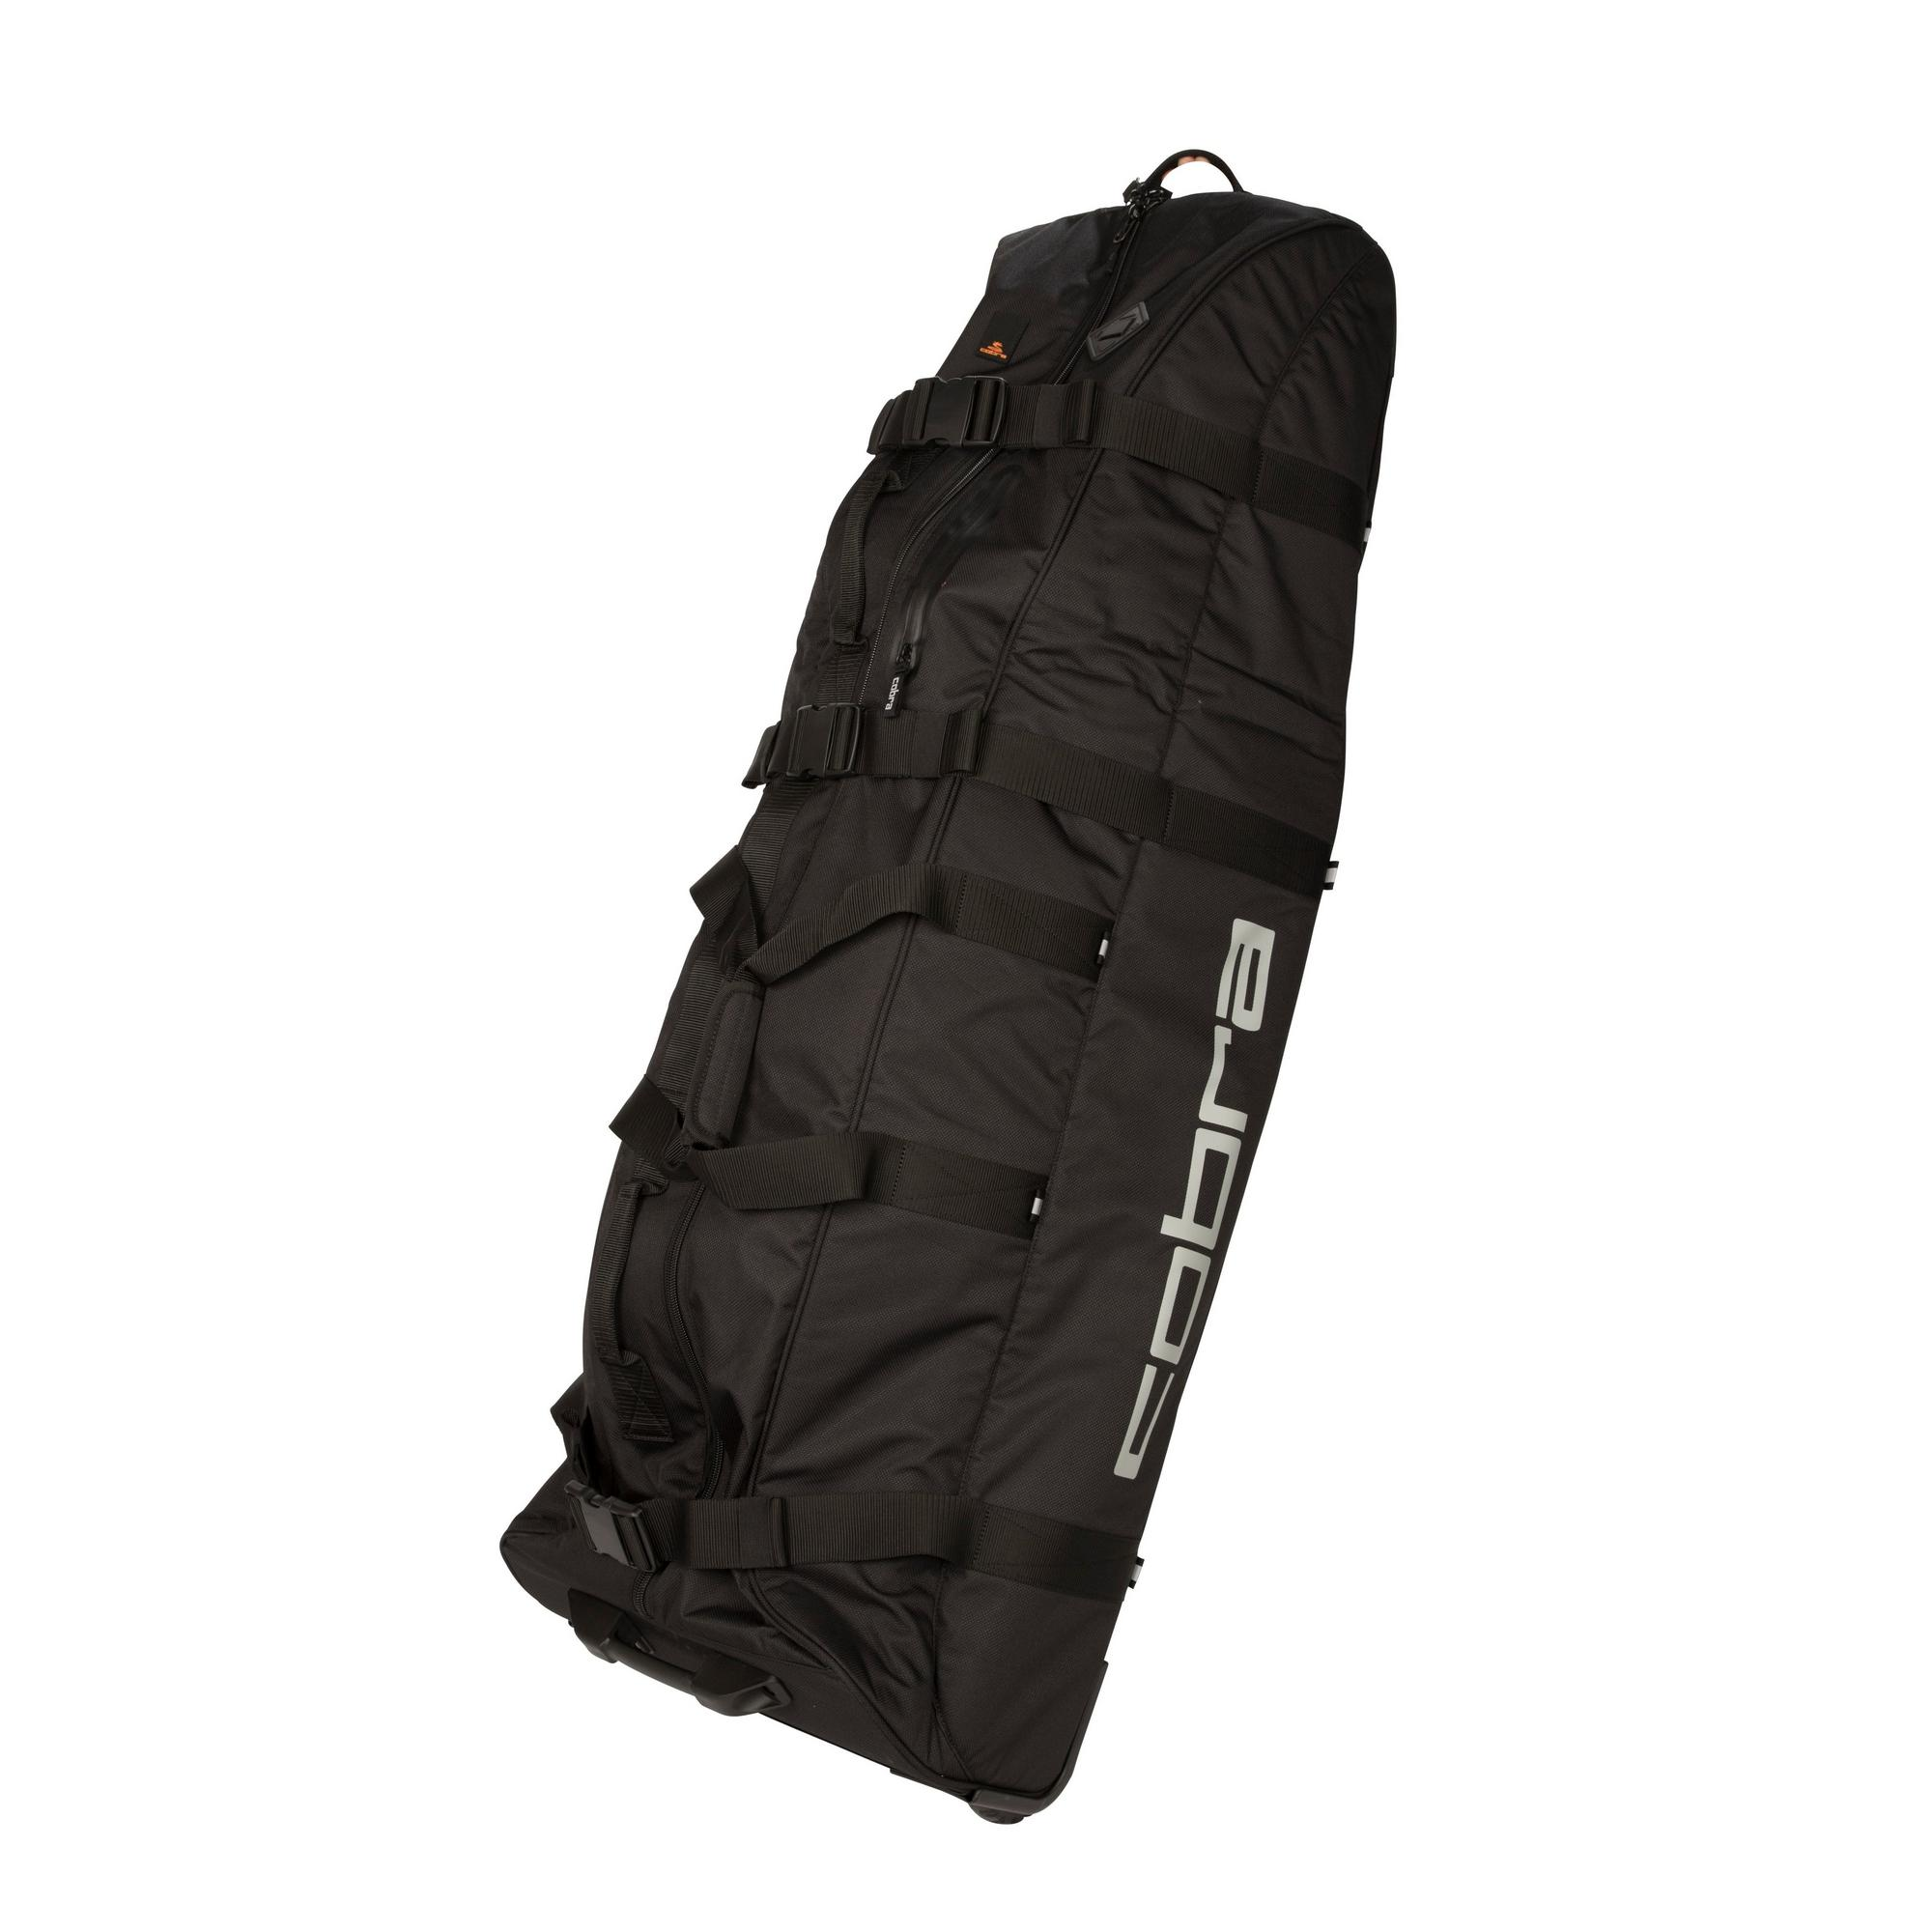 Rolling Club Bag Travel Cover